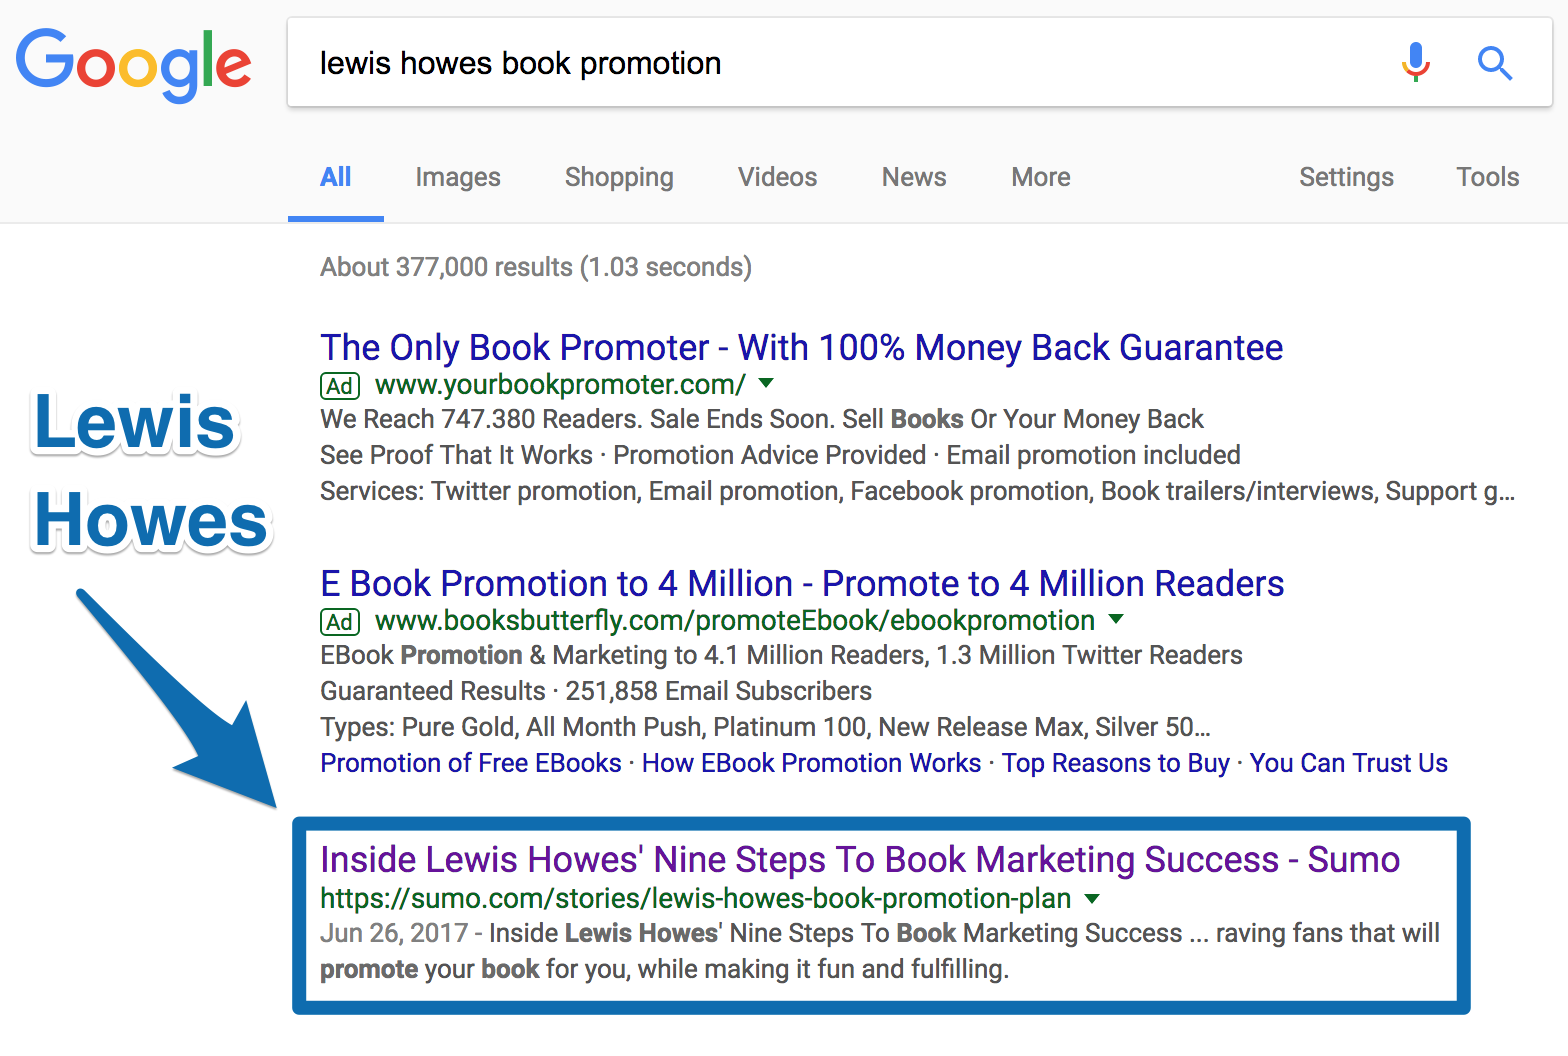 Screenshot showing the Sumo google search result for Lewis Howes book promotion